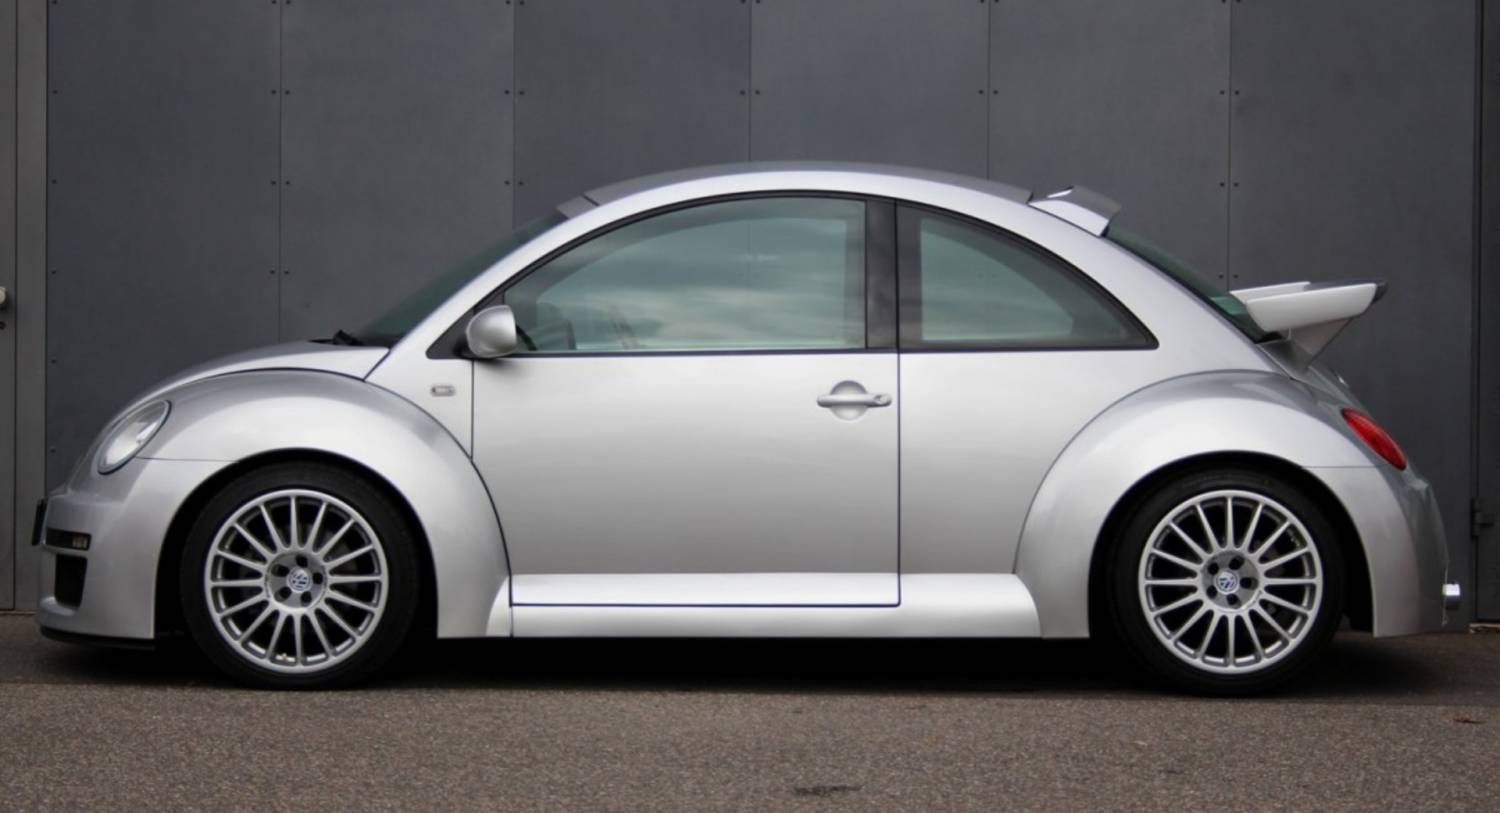 Underestimate This 2003 VW Beetle RSi At Your Own Peril